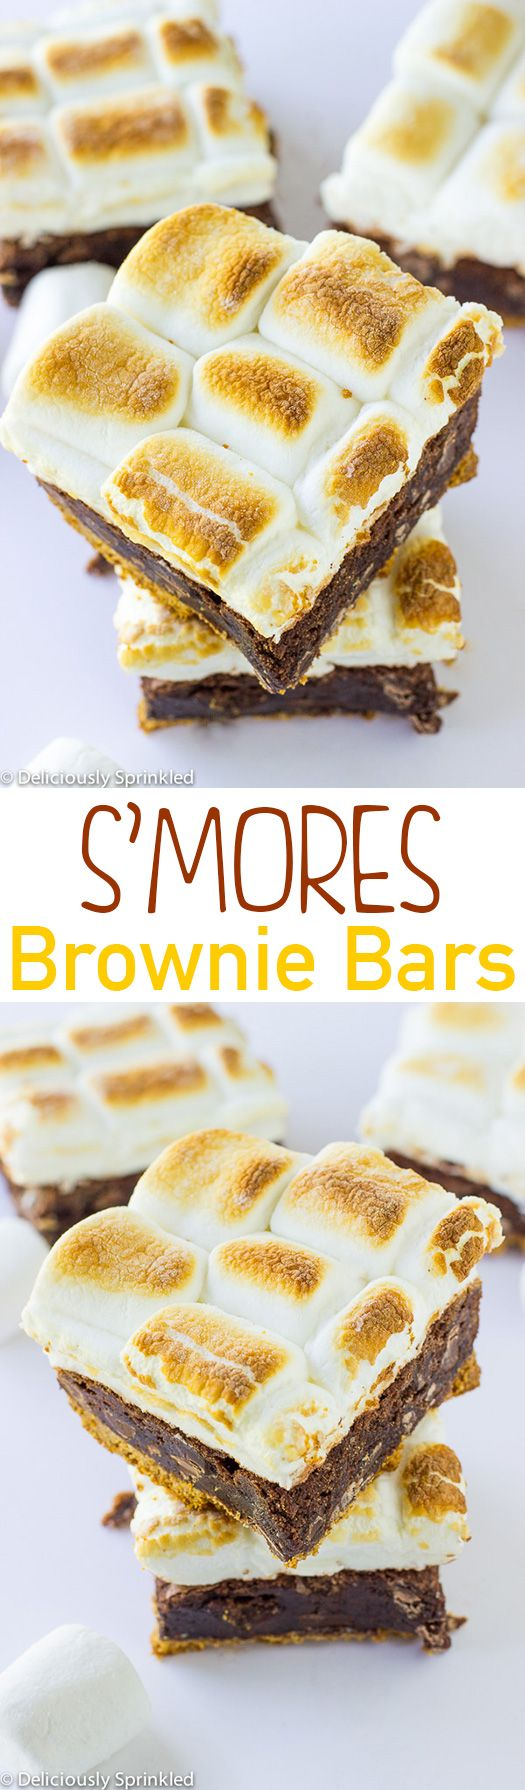 S'mores Brownie Bars | Recipe | Campfires, Brownies and Bar